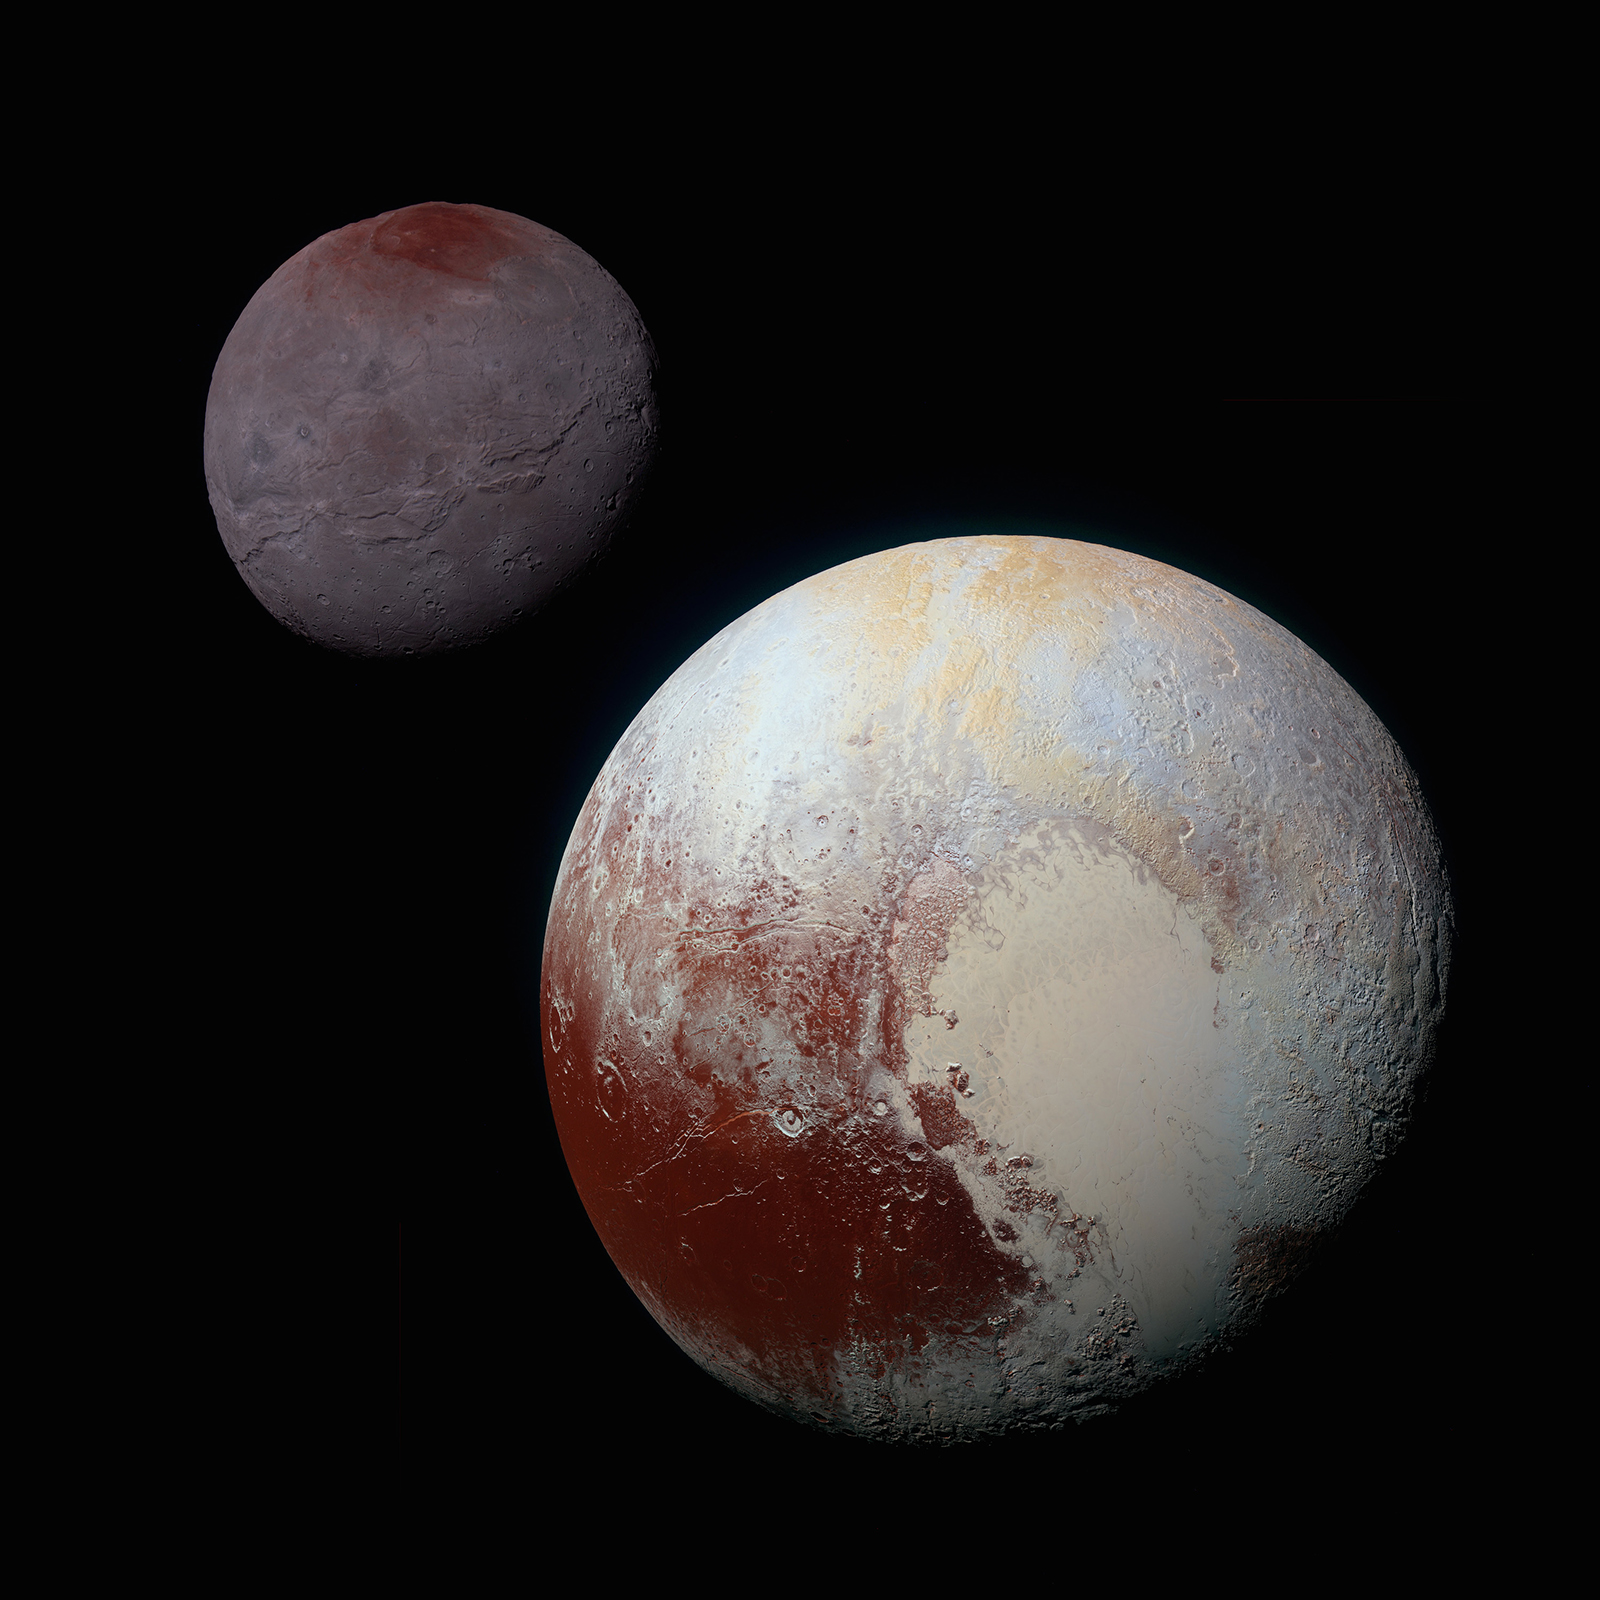 Pluto in front of Charon.